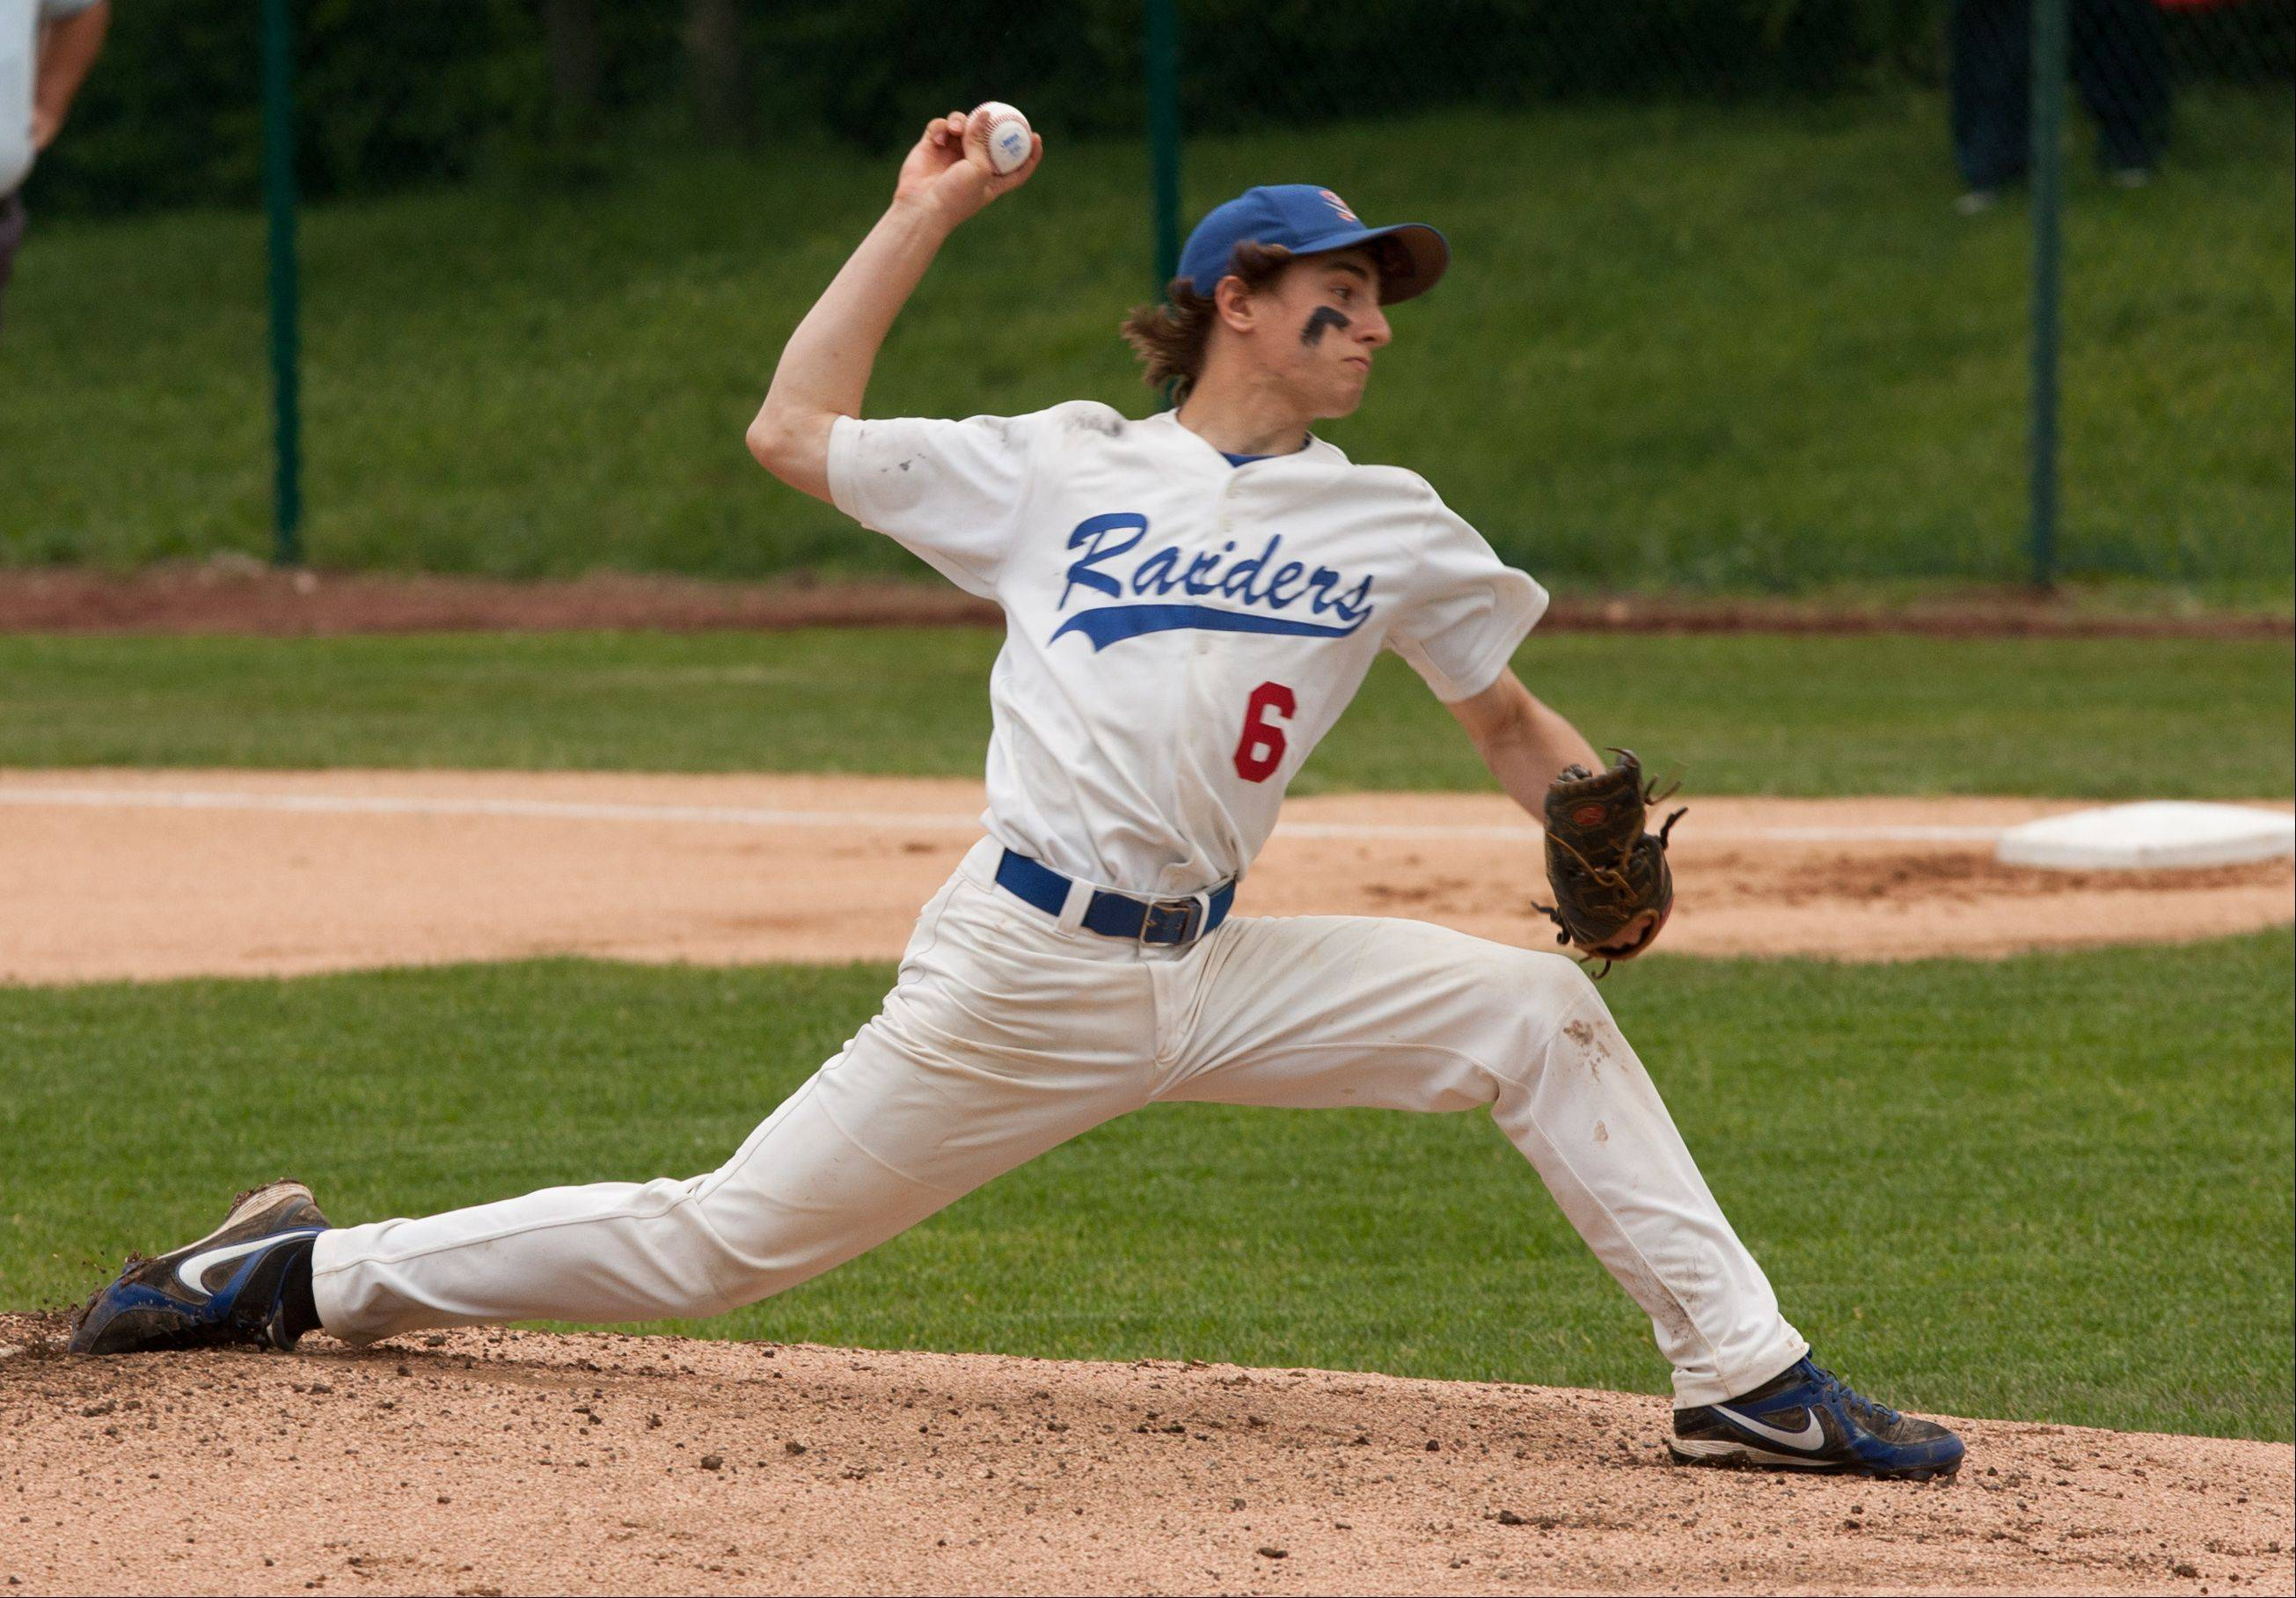 Glenbard South's Ethan Gasbarro delivers a pitch against Clemente during the Nazareth Class 4A sectional semifinals in LaGrange Park.